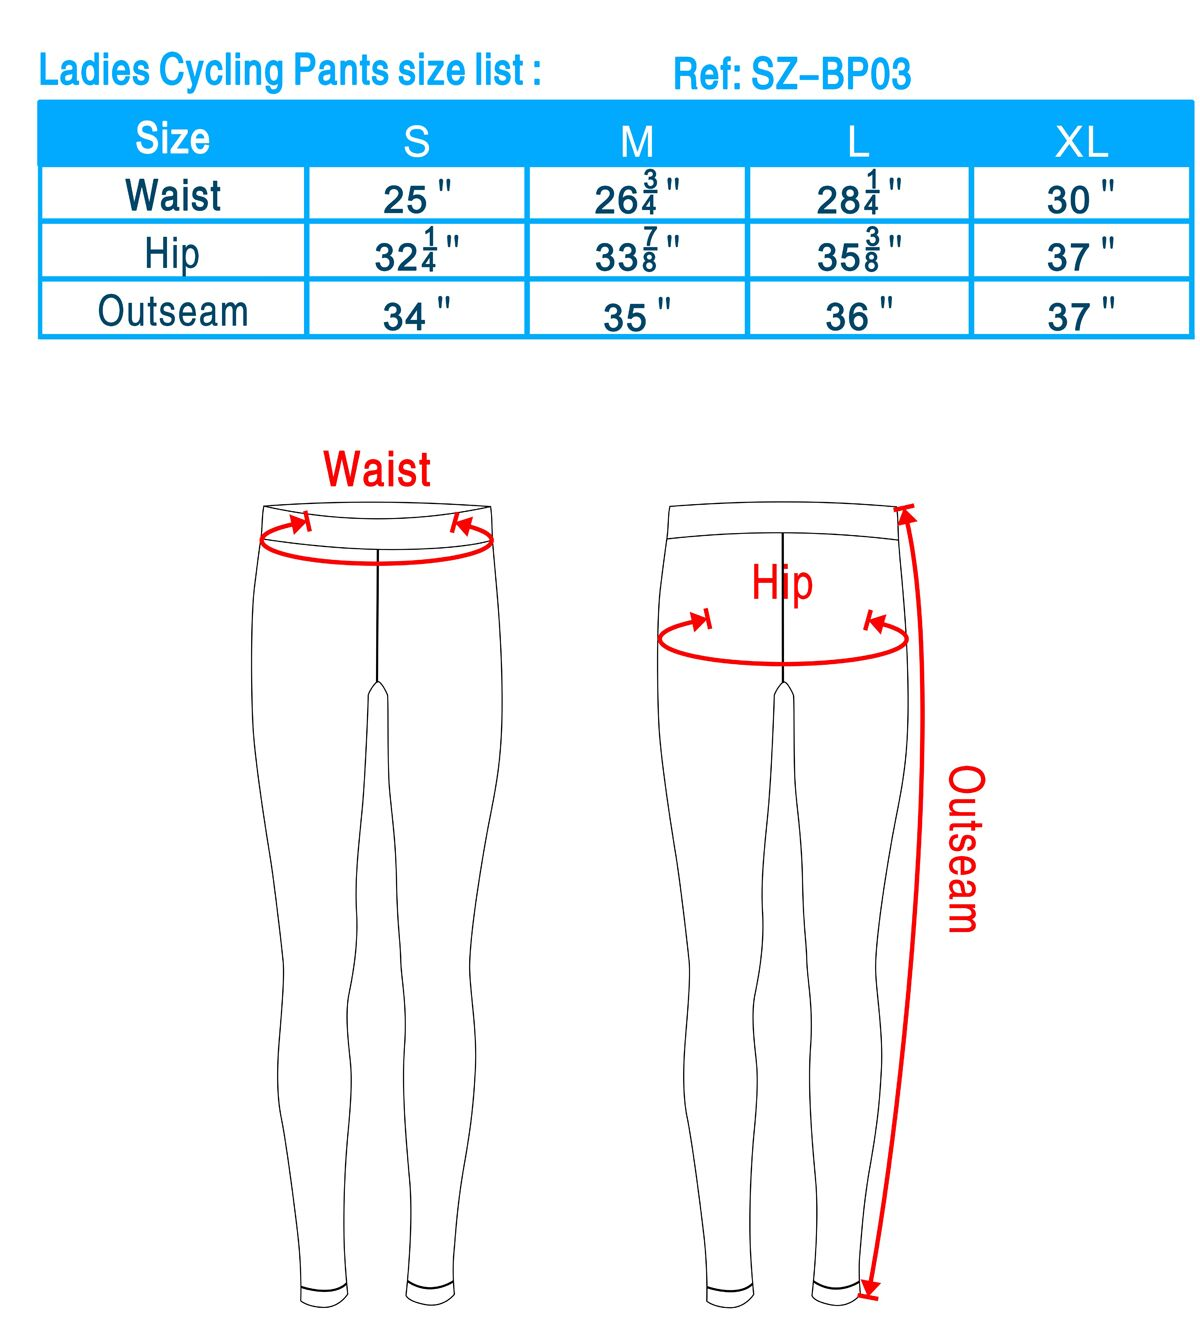 Ladies Cycling Pants size list